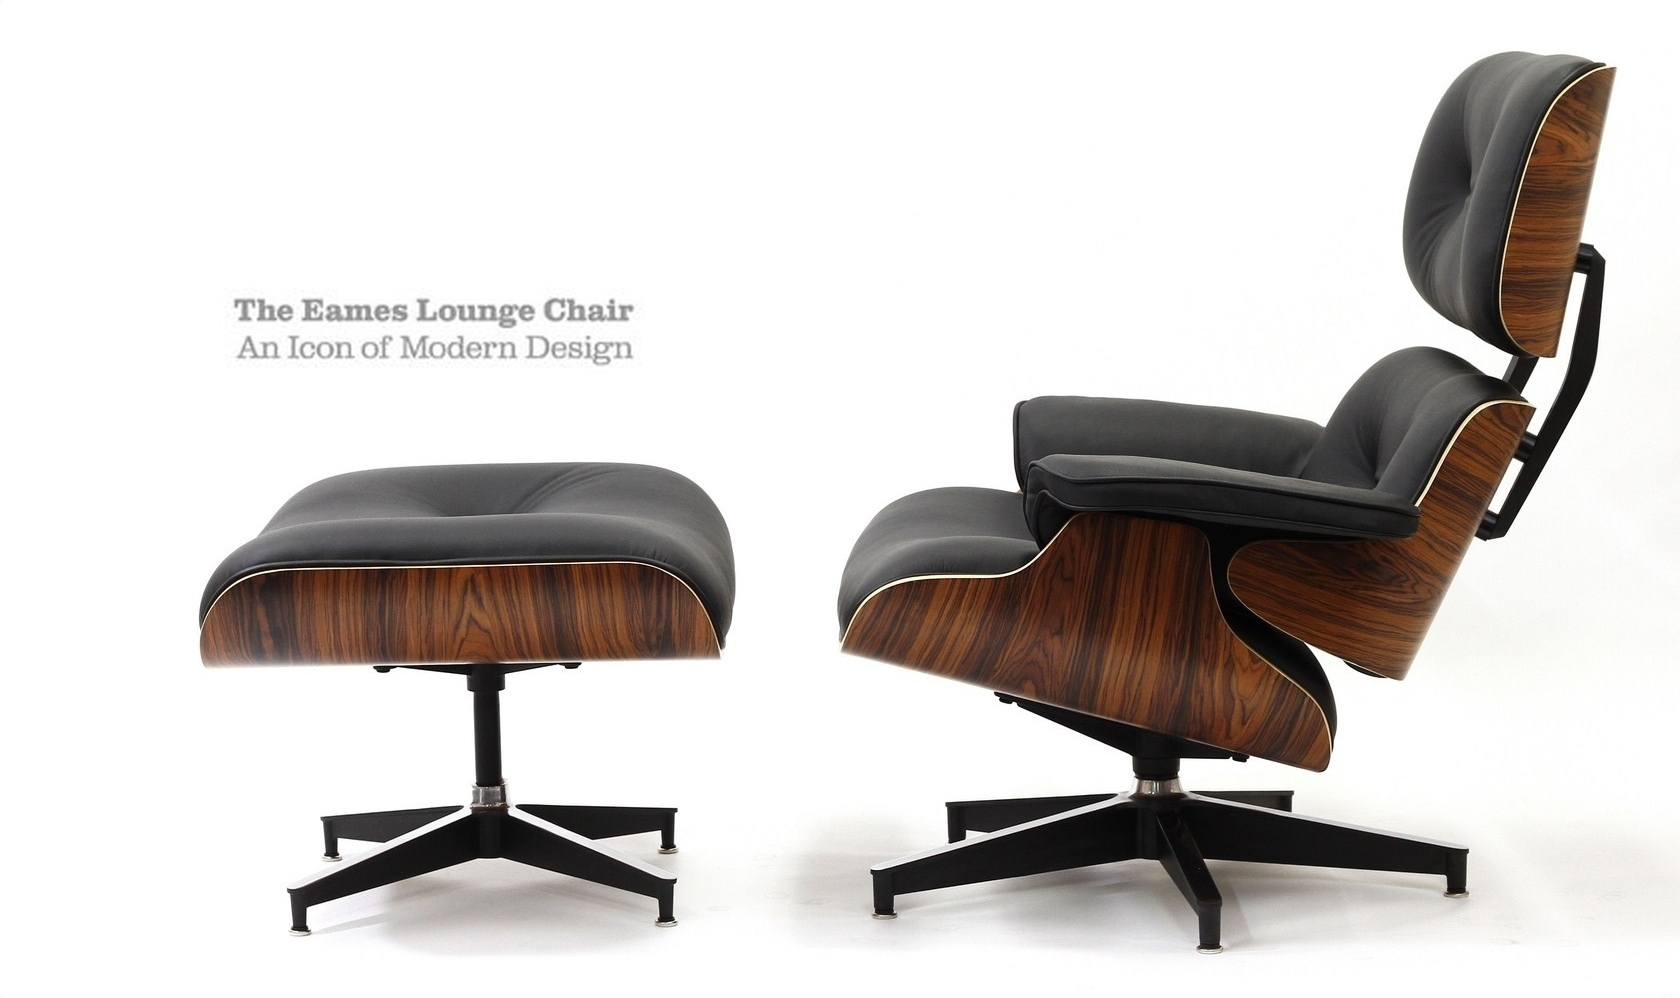 The Eames Lounge Chair An Icon Of Modern Design Book - Fauteuil design charles eames